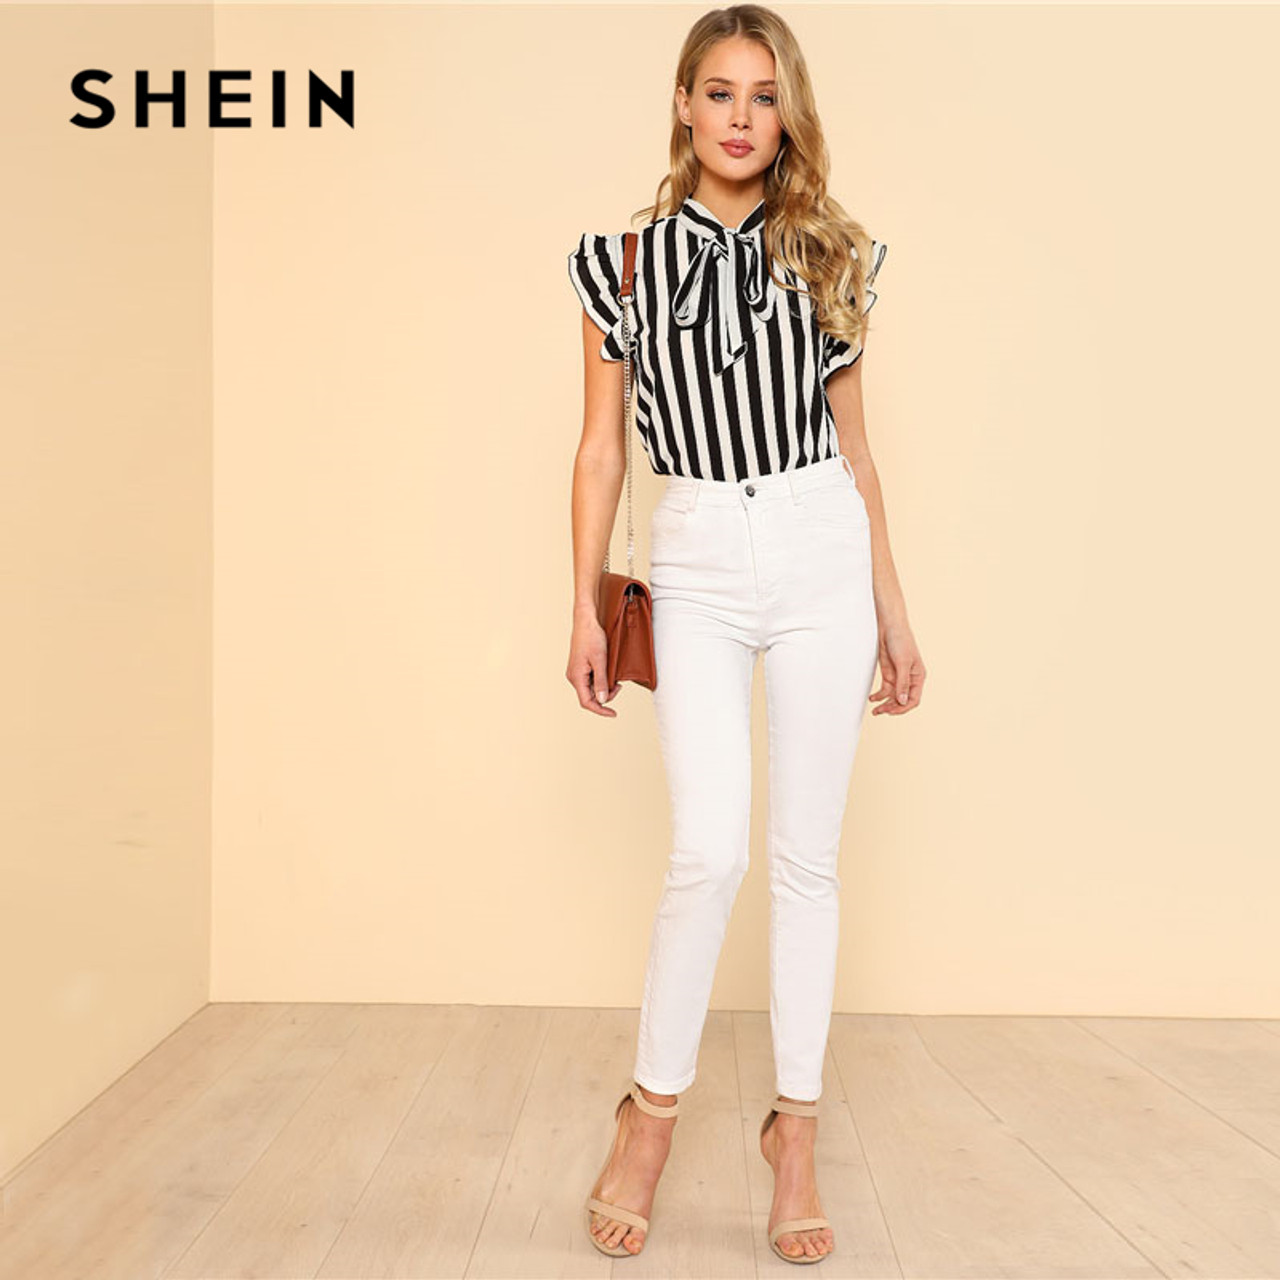 4cb0d821b9 ... SHEIN Summer Top Elegant Work Women Blouses Cap Sleeve Black and White  Tie Neck Butterfly Sleeve ...